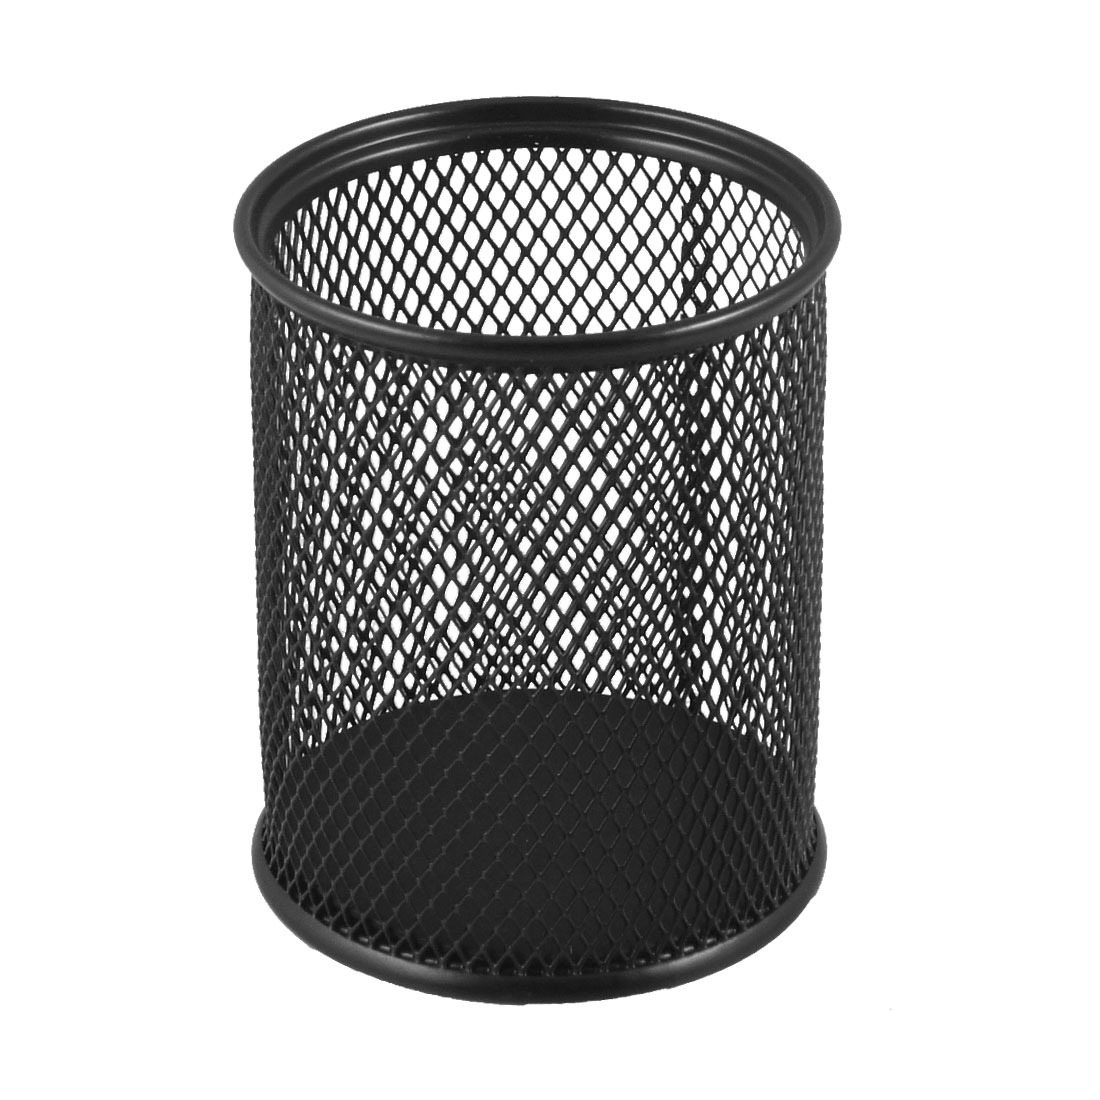 8cm Dia Cylinder Shaped Mesh Style Black Metal Pen Ruler Pencil Holder